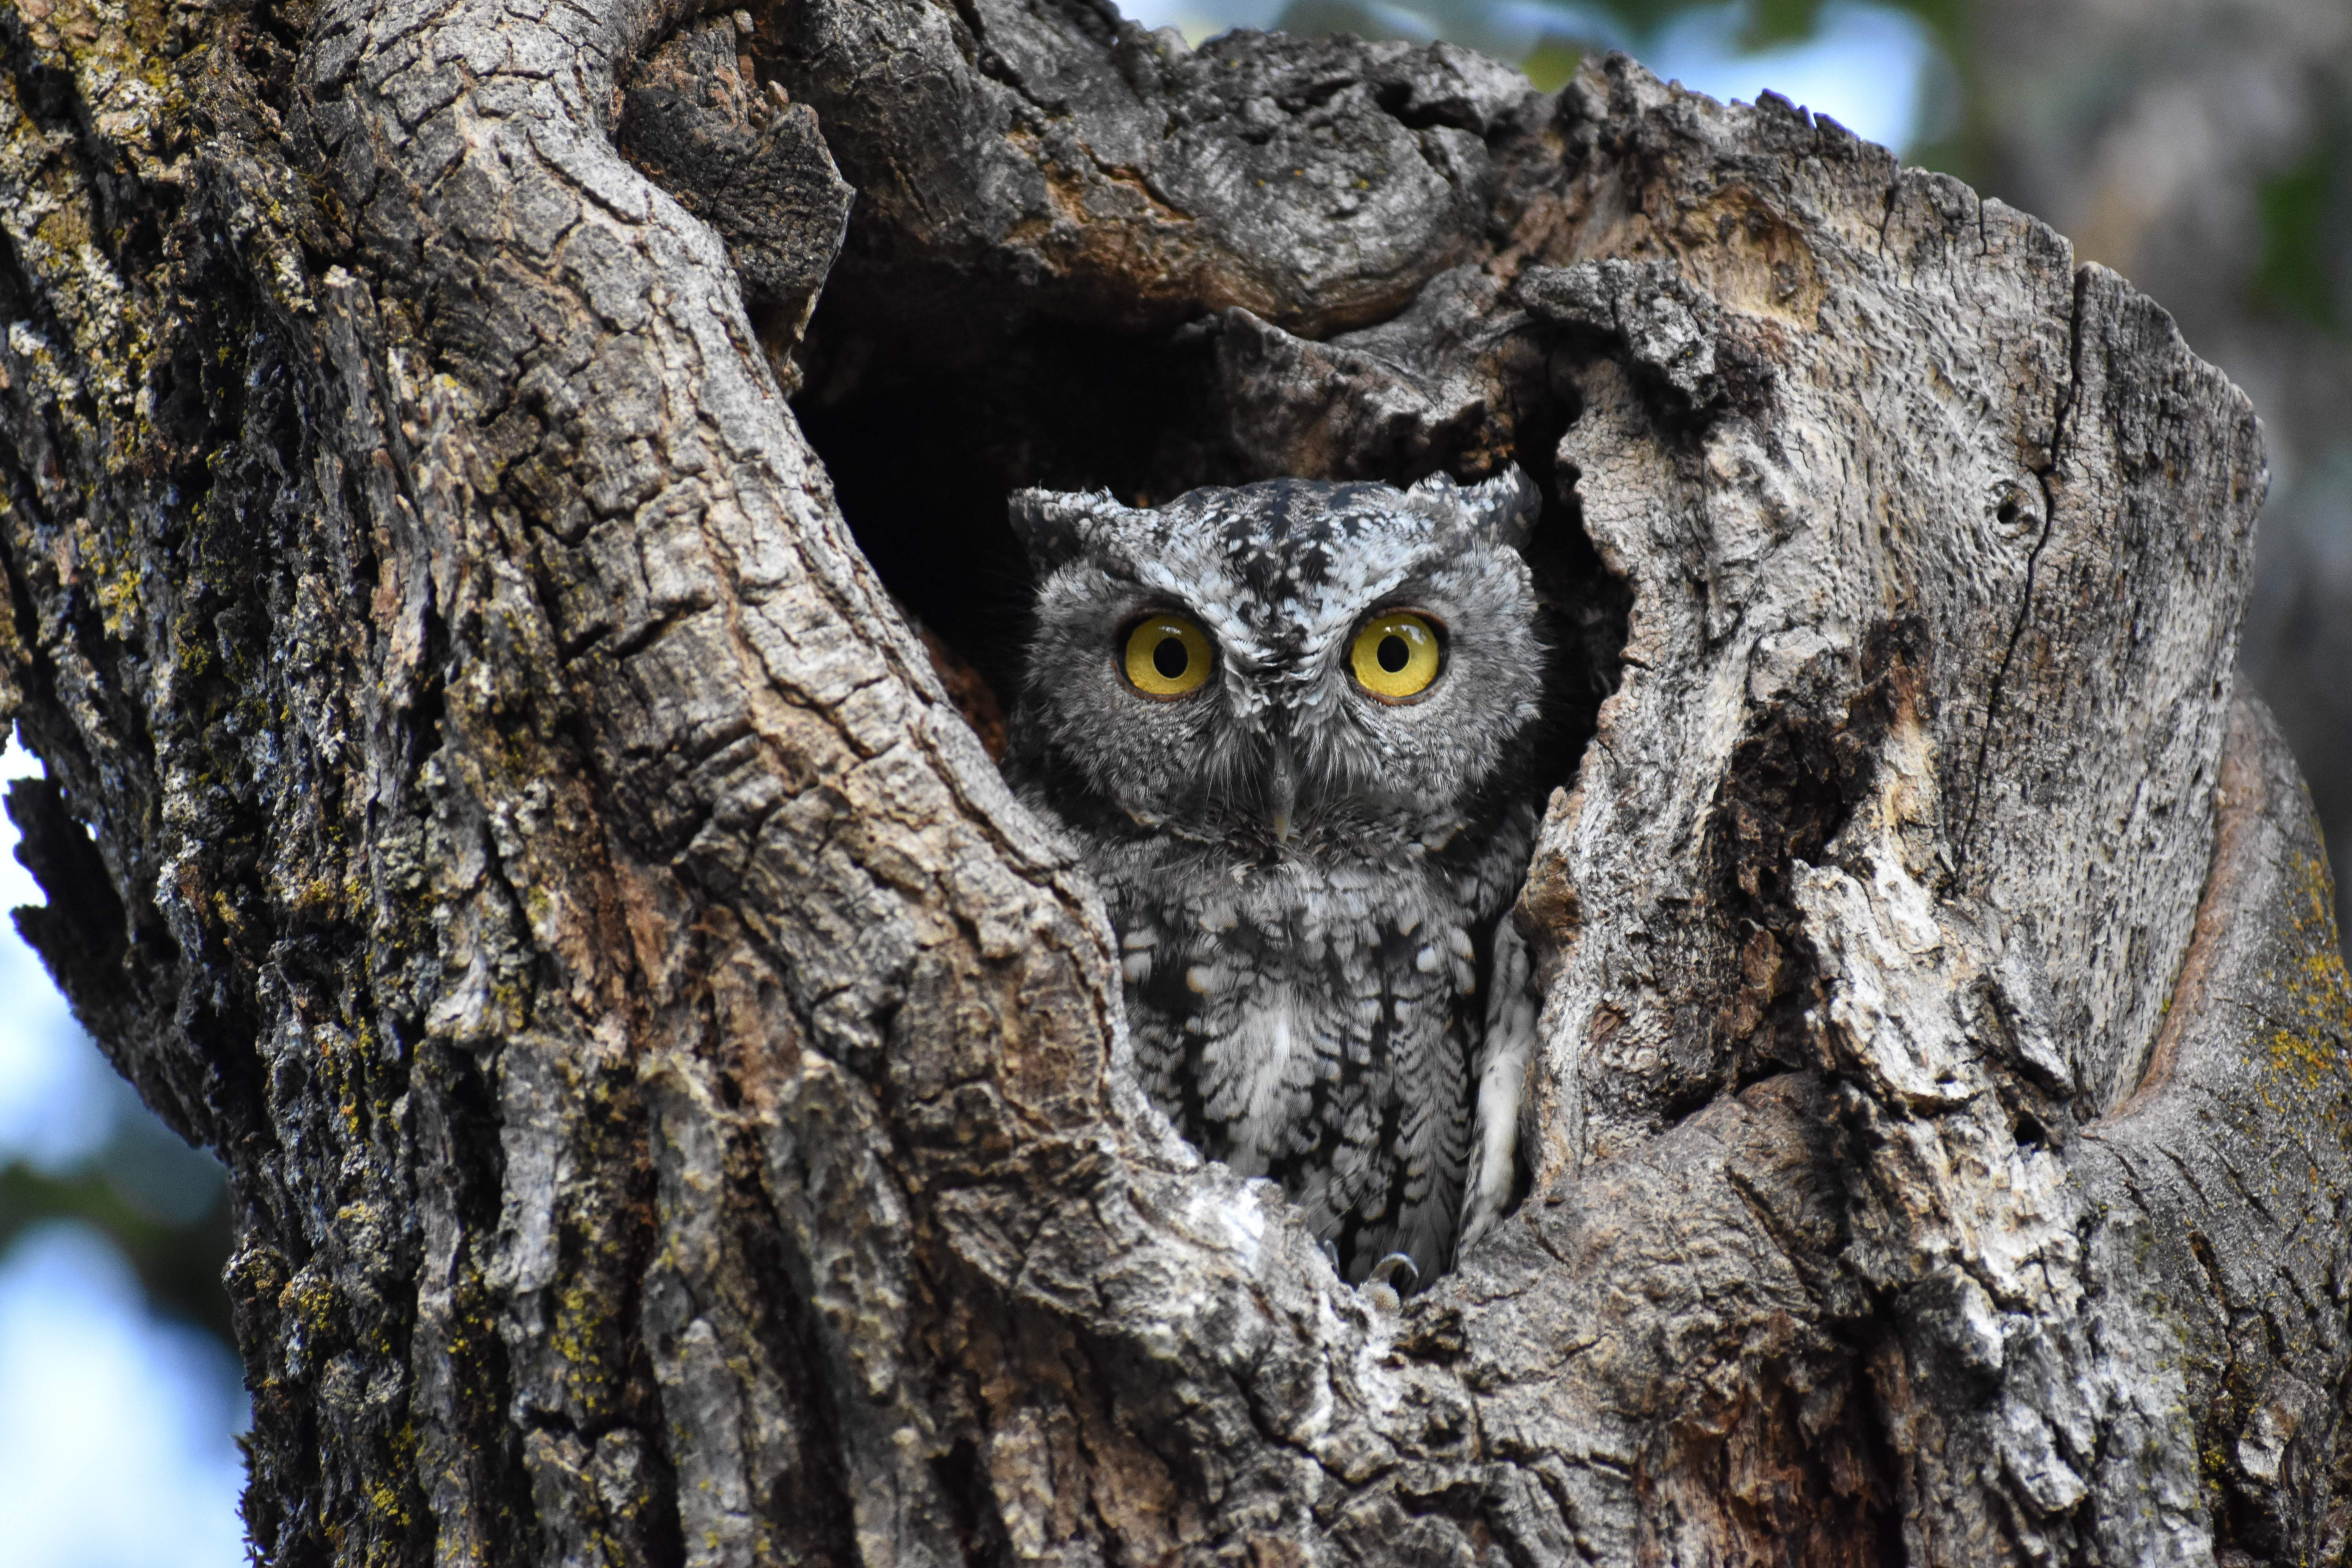 Western screech owl at a local park in Medford. - Photo by Aaron Peterson